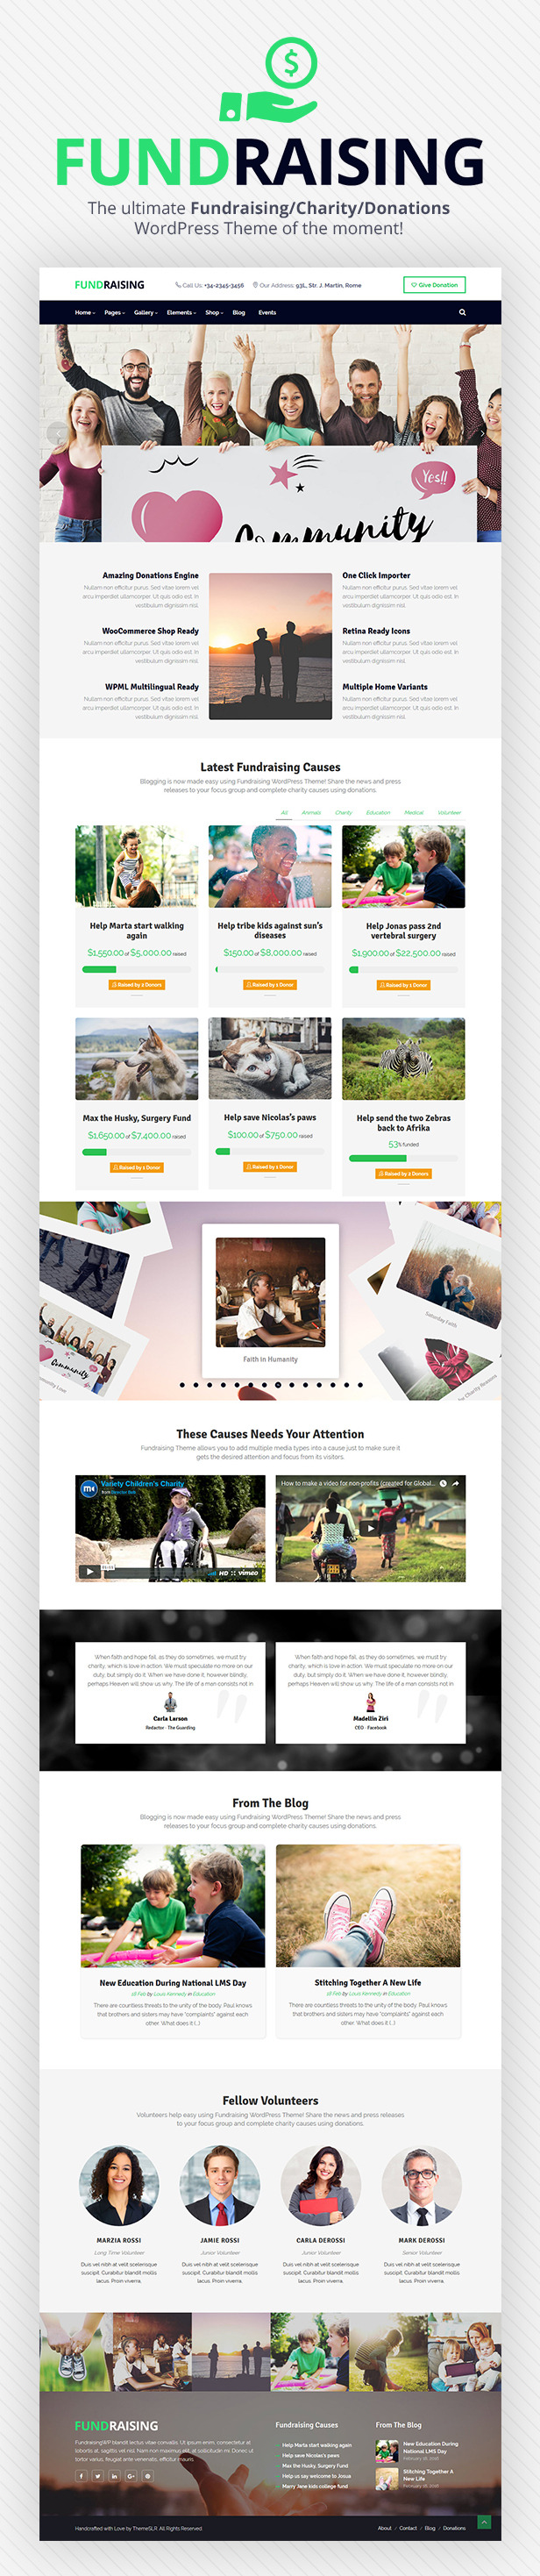 Fundraising - Charity/Donations WordPress Theme - 1